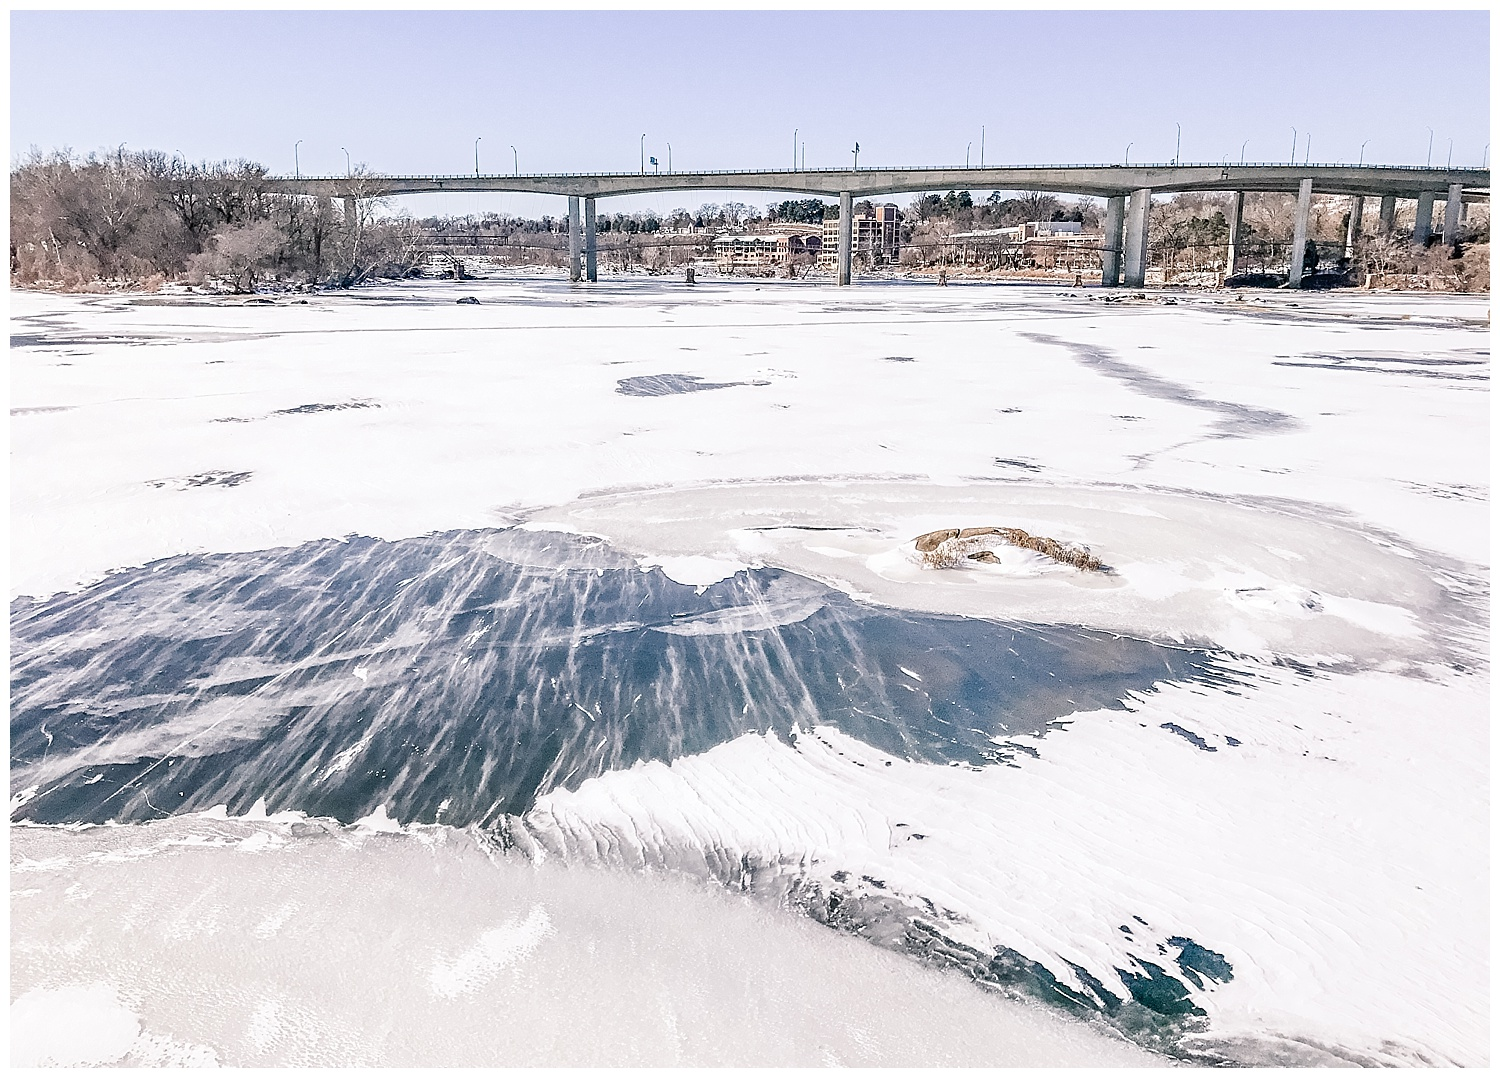 James River in Snow - Photographer Stacie Marshall